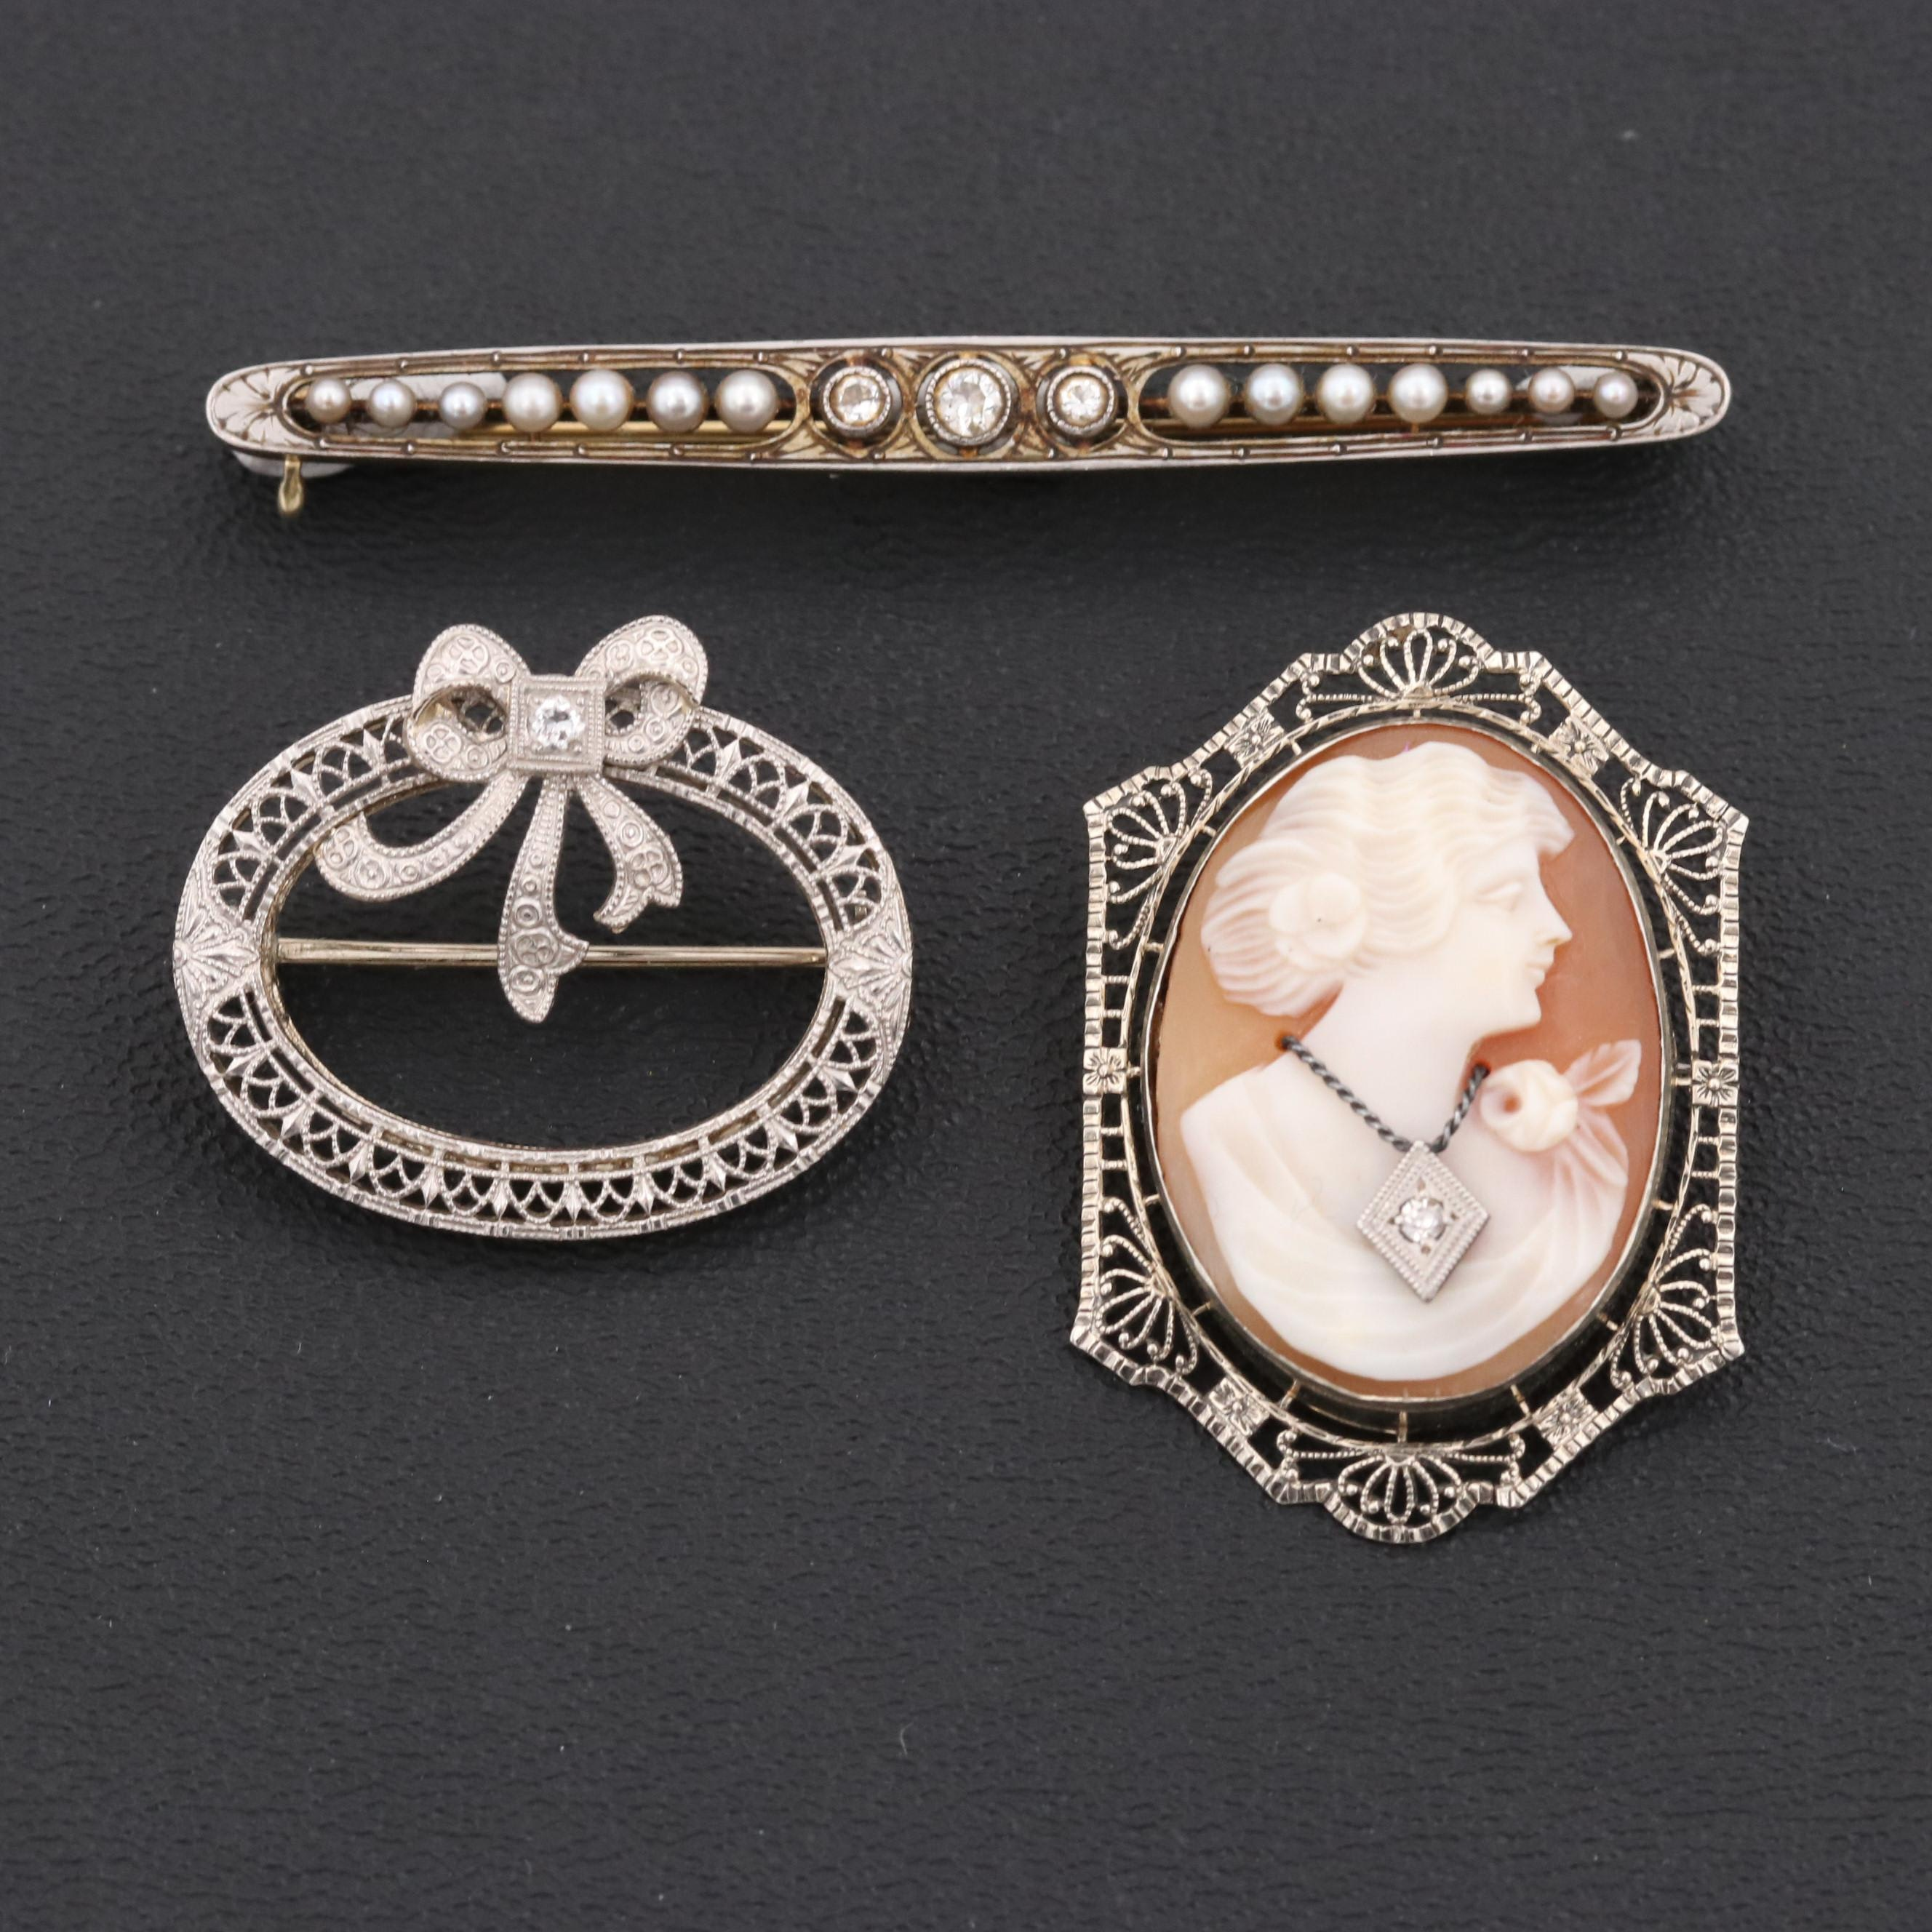 Vintage 14K, 18K Gold and Platinum Brooches Featuring Habillè Cameo and Diamonds